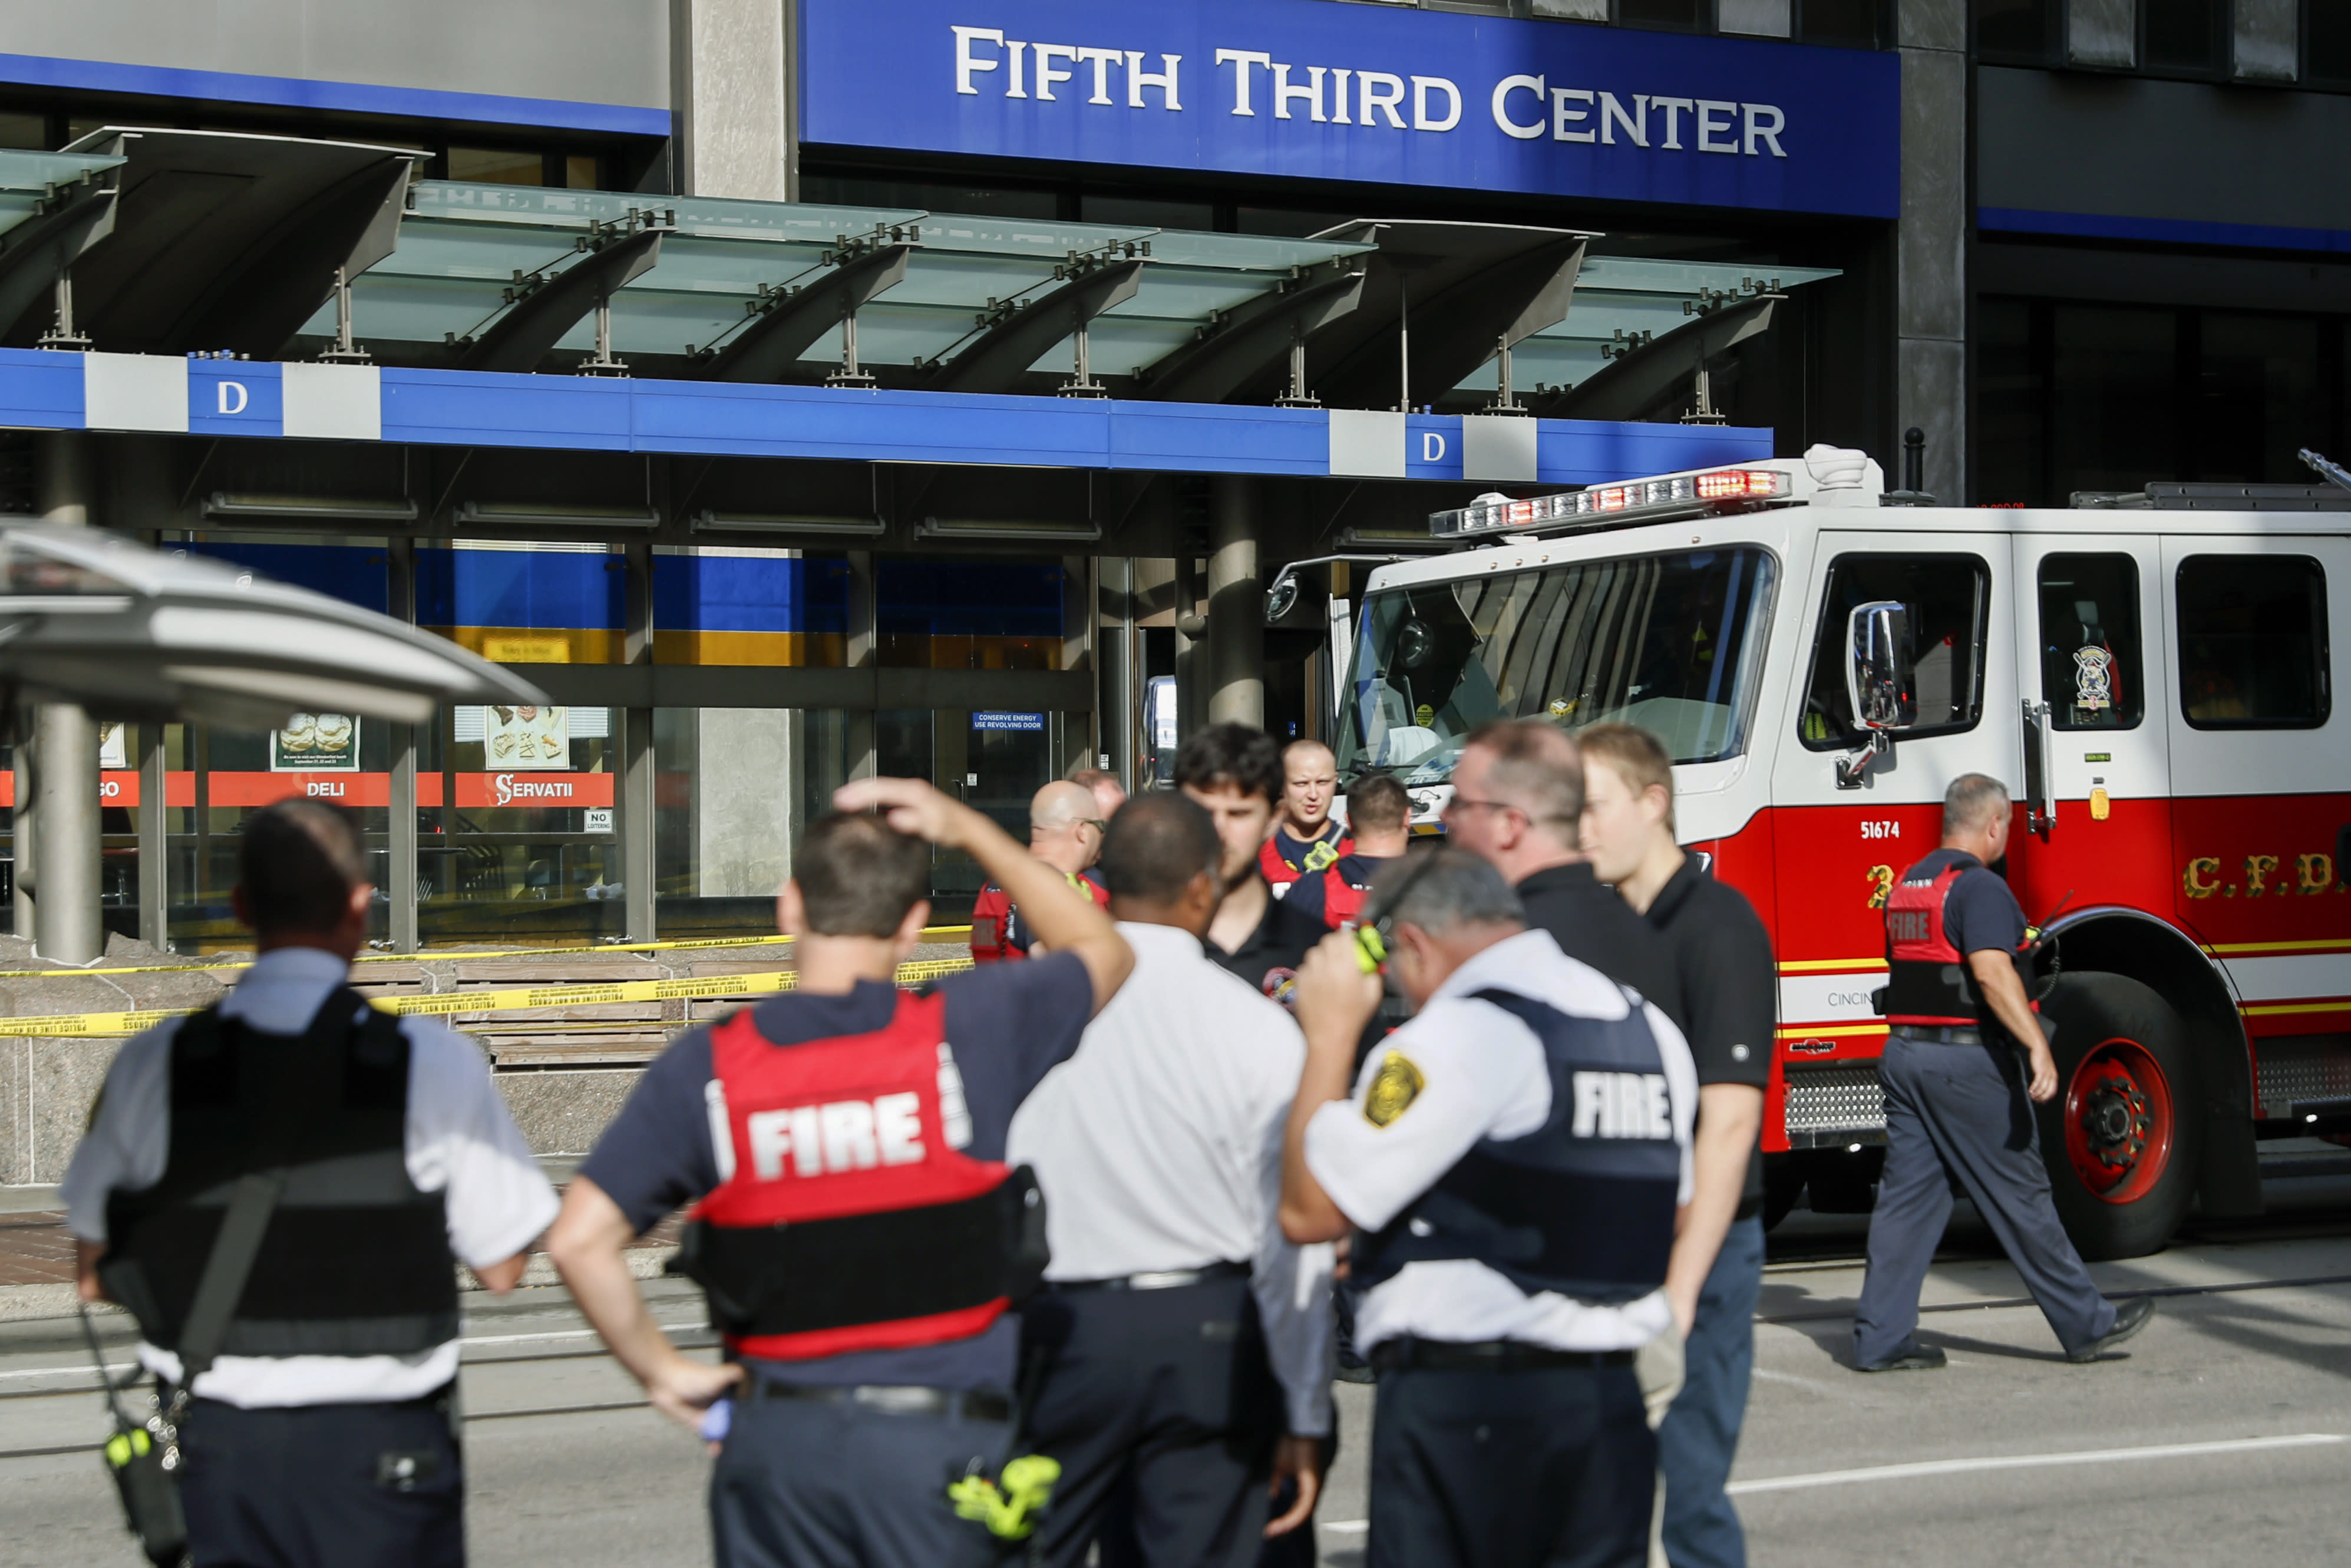 <p>Emergency personnel and police respond to reports of an active shooter situation near Fountain Square, Thursday, Sept. 6, 2018, in downtown Cincinnati. (Photo: John Minchillo/AP) </p>